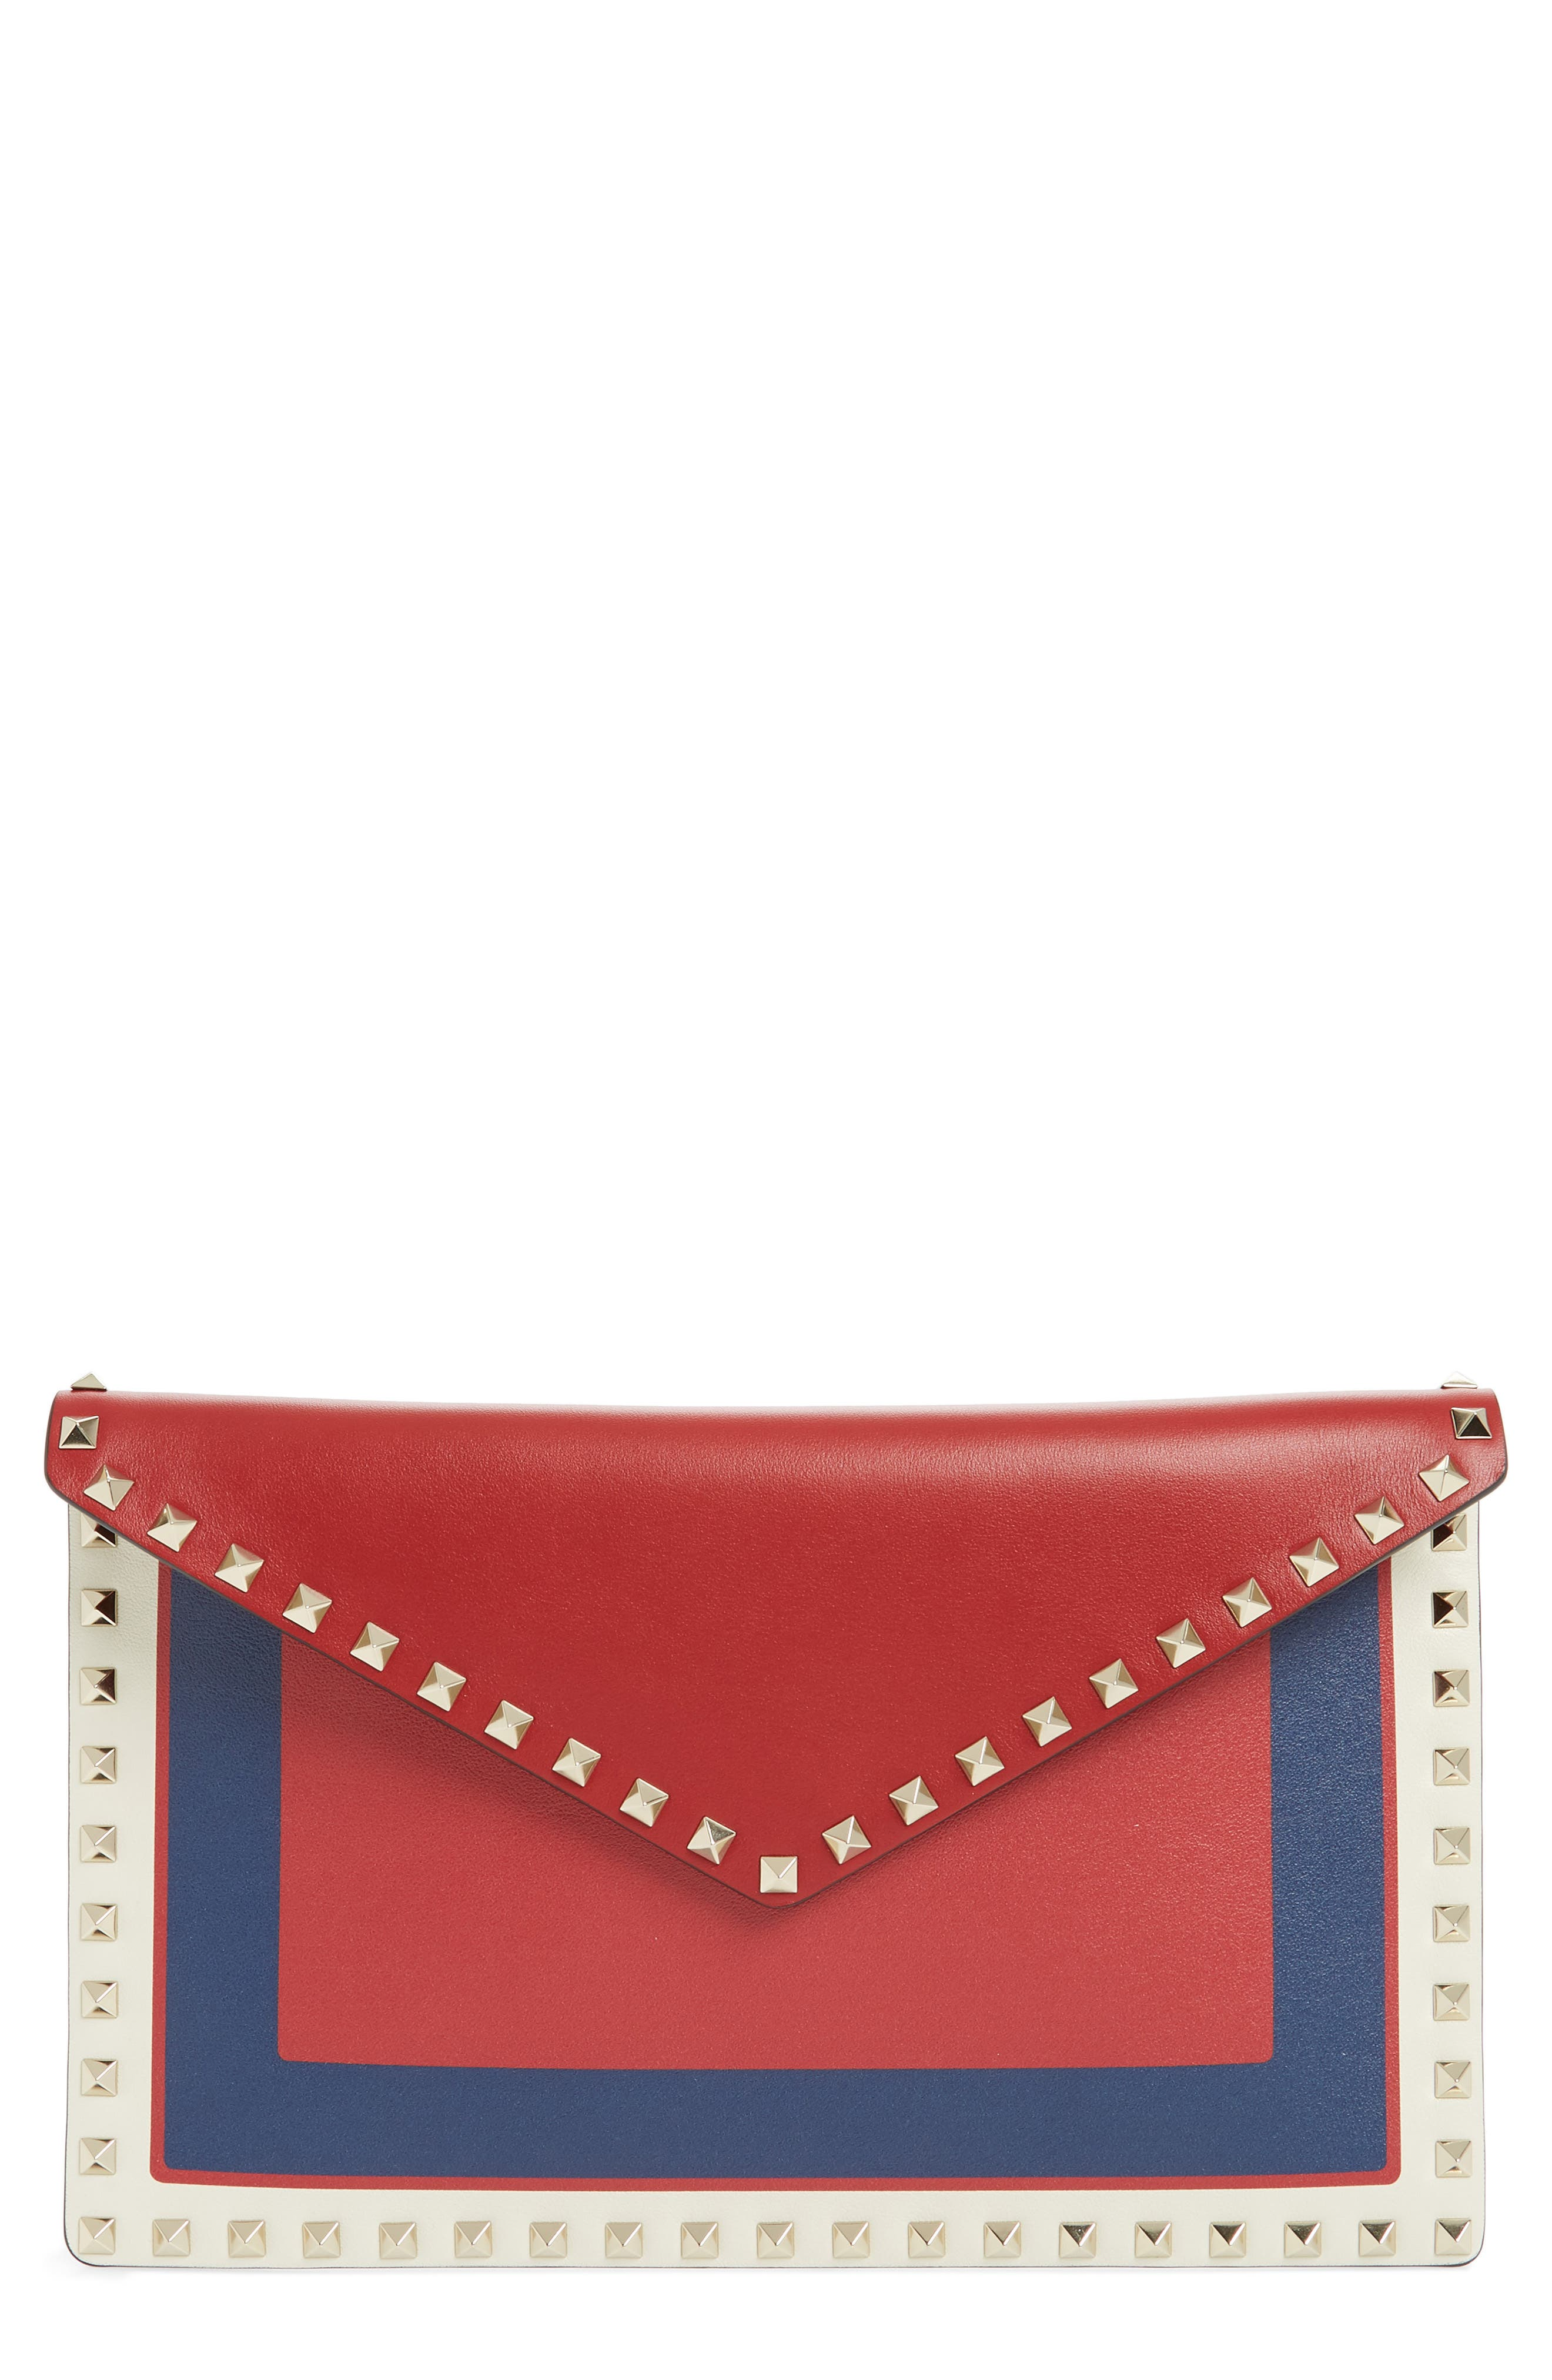 VALENTINO GARAVANI Large Rockstud Calfskin Leather Envelope Pouch, Main, color, PURE BLUE/ LIGHT IVORY/ ROSSO